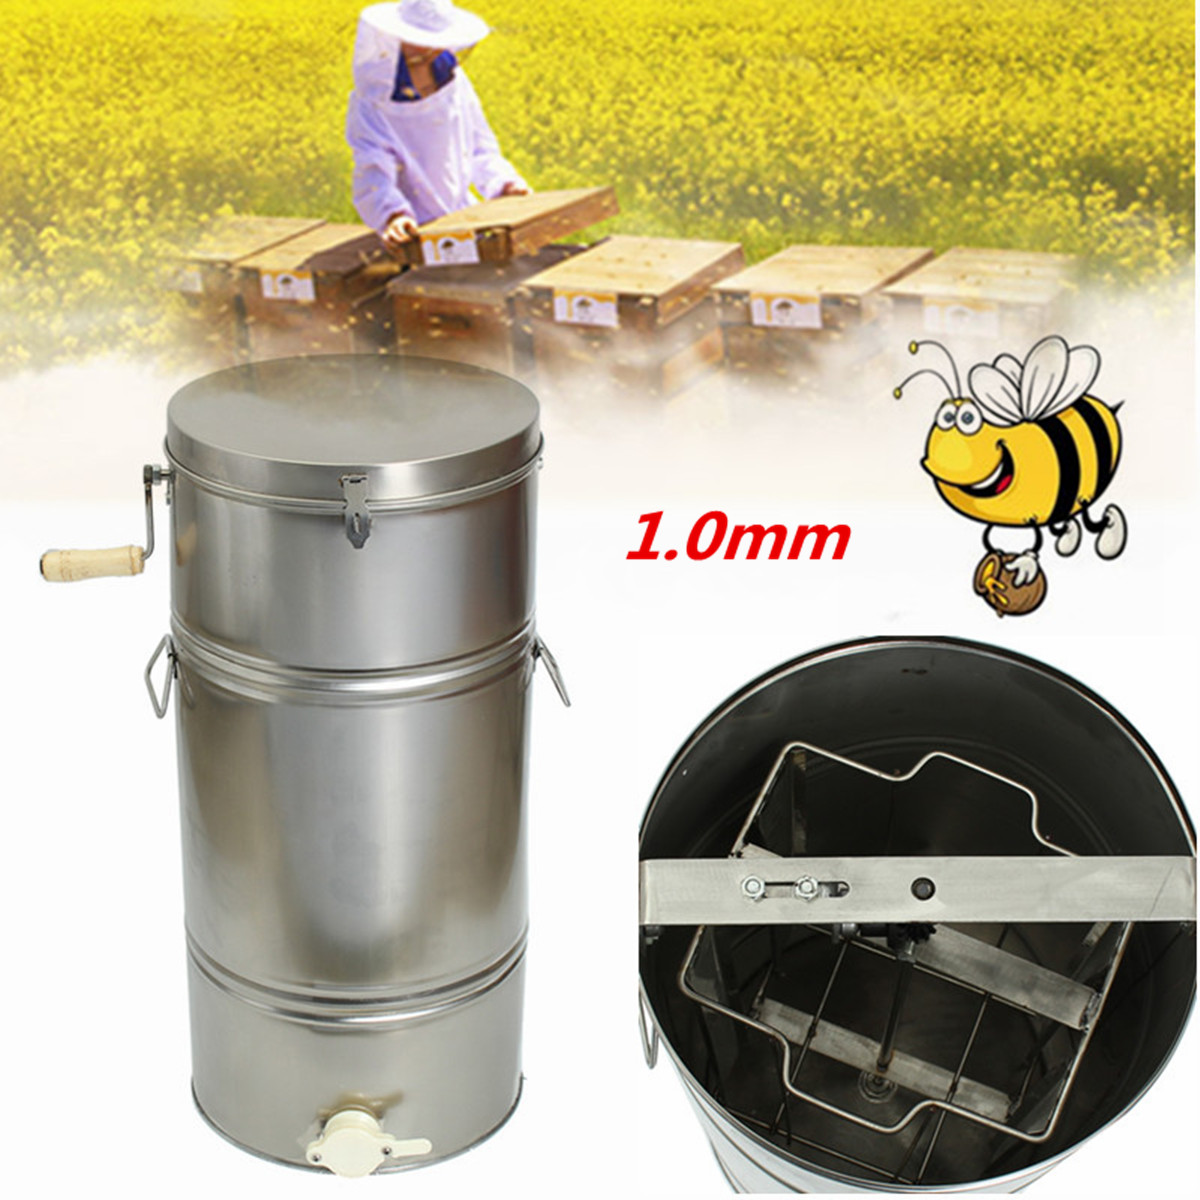 Thickness 0.1mm 2 Frame Bee Extractor Stainless Steel Bee Honey Extractor Honeycomb Drum Beekeeping